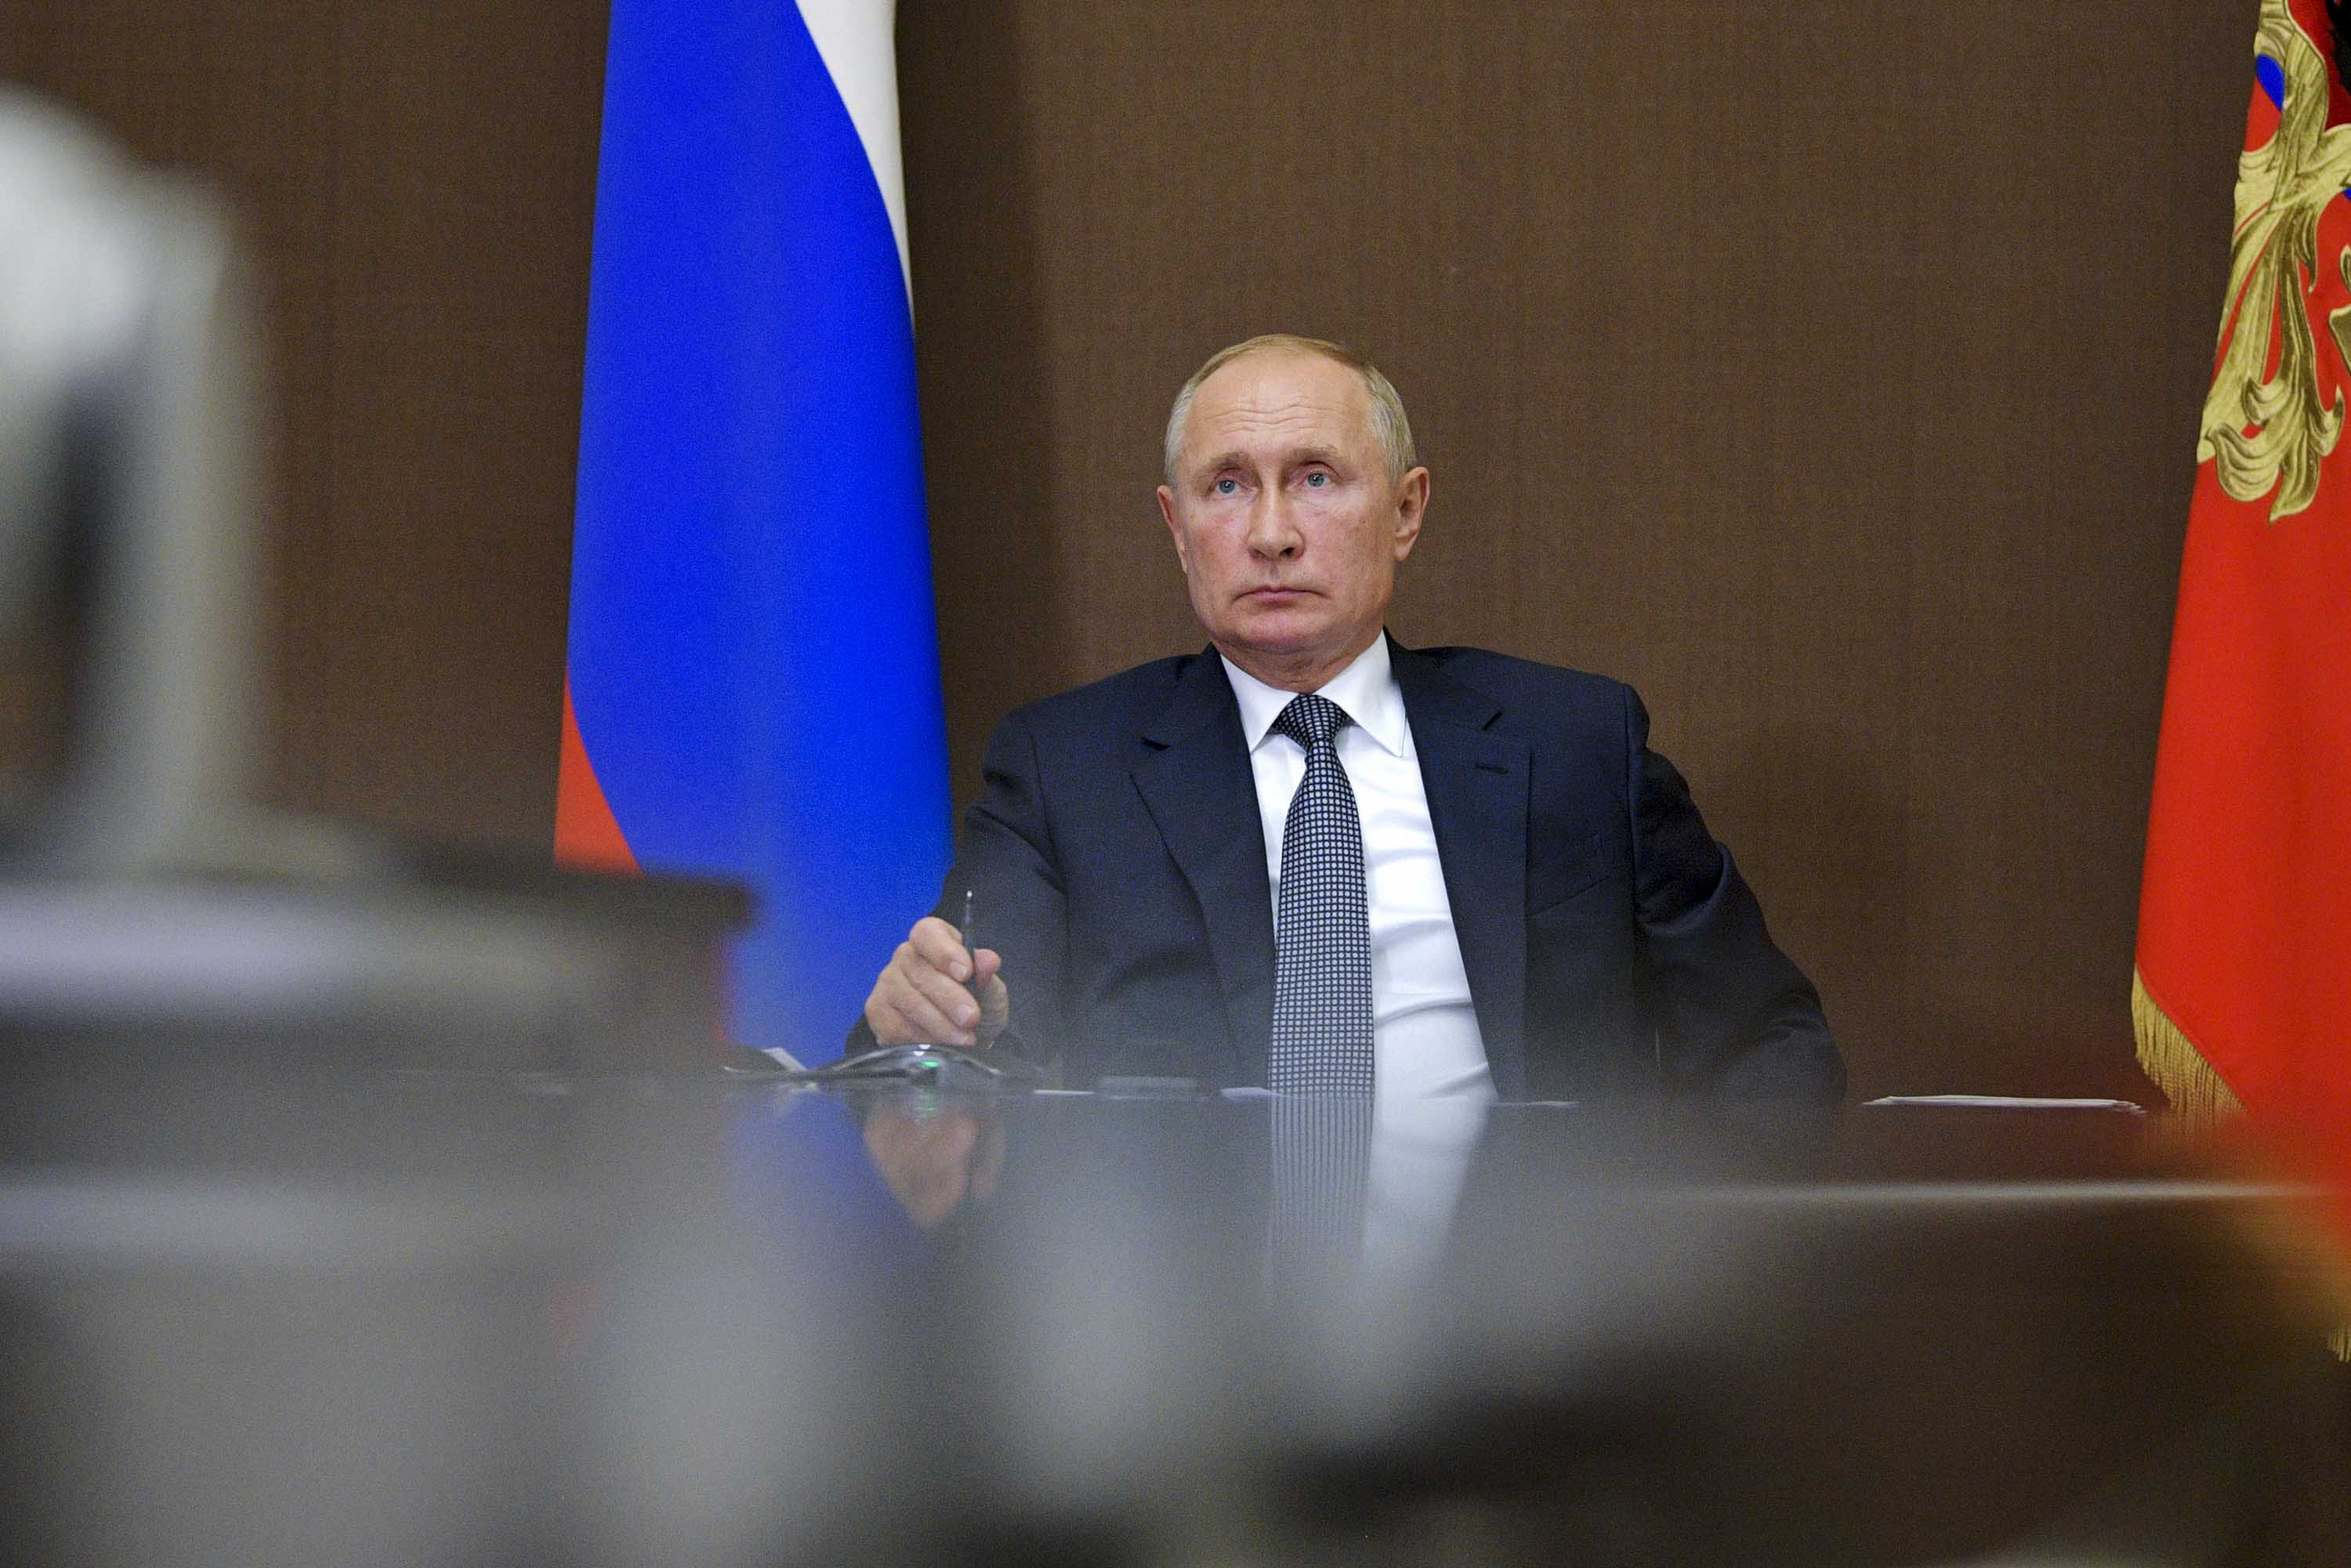 Russian President Vladimir Putin is pictured during a meeting via video conference at the Bocharov Ruchei residence in Sochi, Russia, on Monday, September 28.